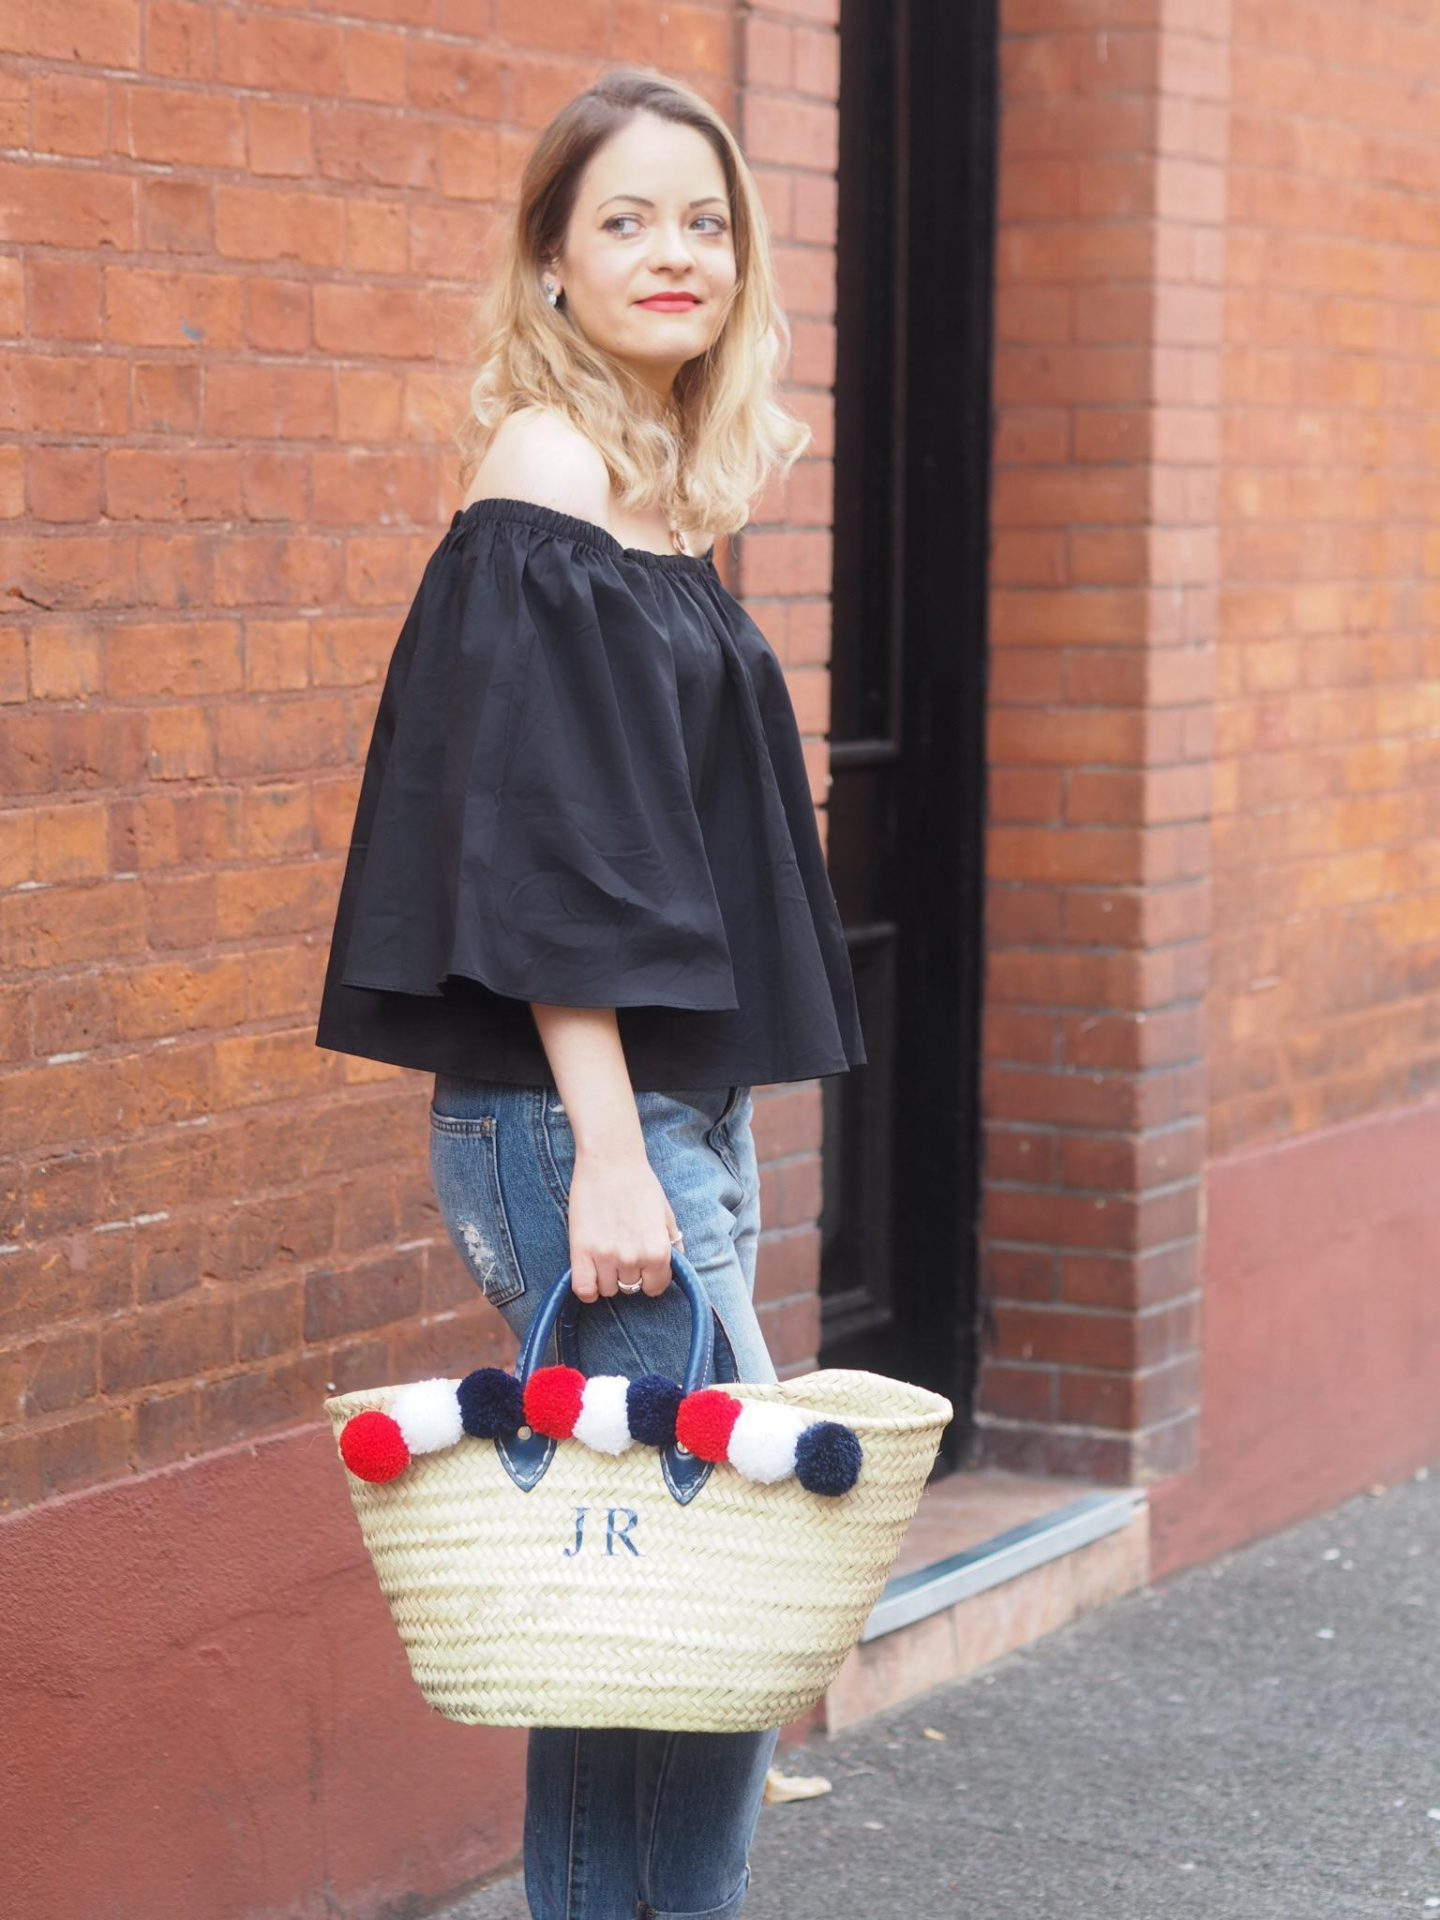 Bardot Top from Set Trendz with Personalised Bag From Rae Feather